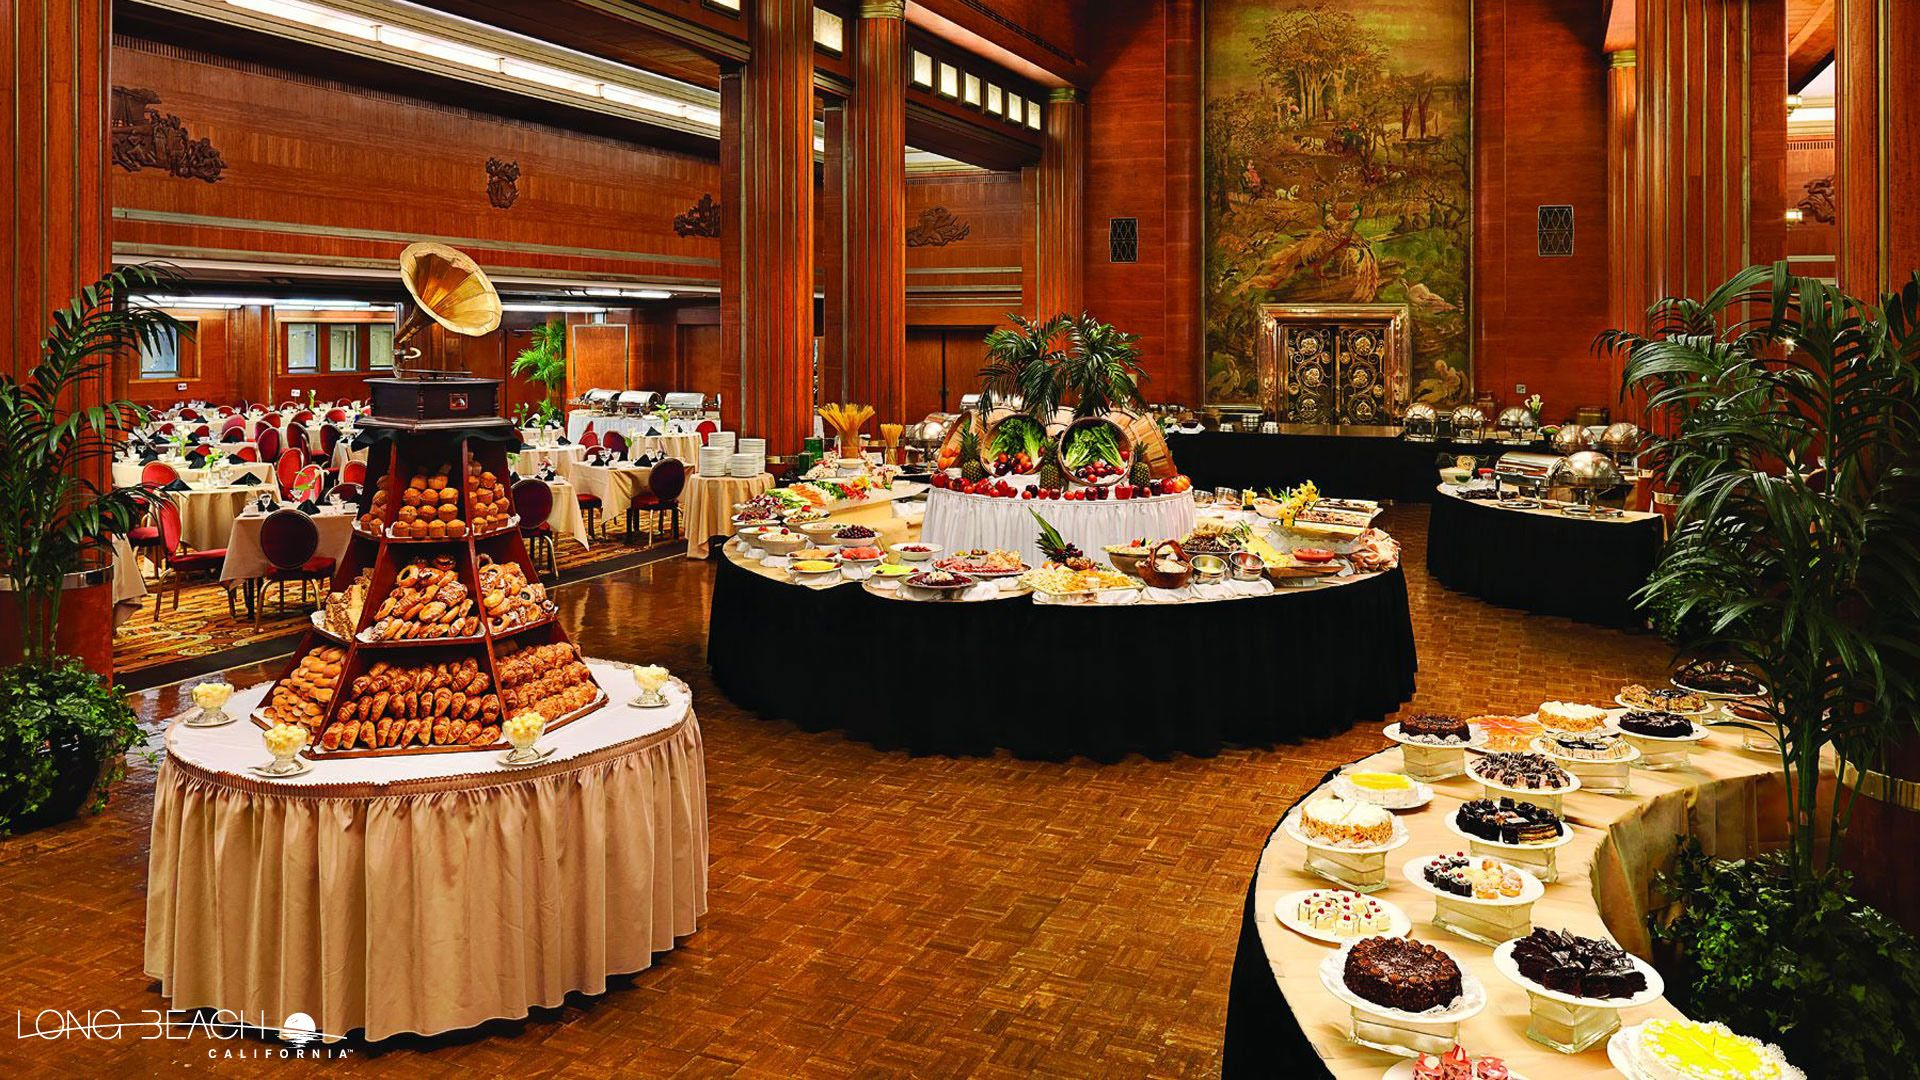 Enjoy A Scenic Sunday Brunch At The Queen Mary Reef Fuego Hotel Maya Or Queensview Steakhouse